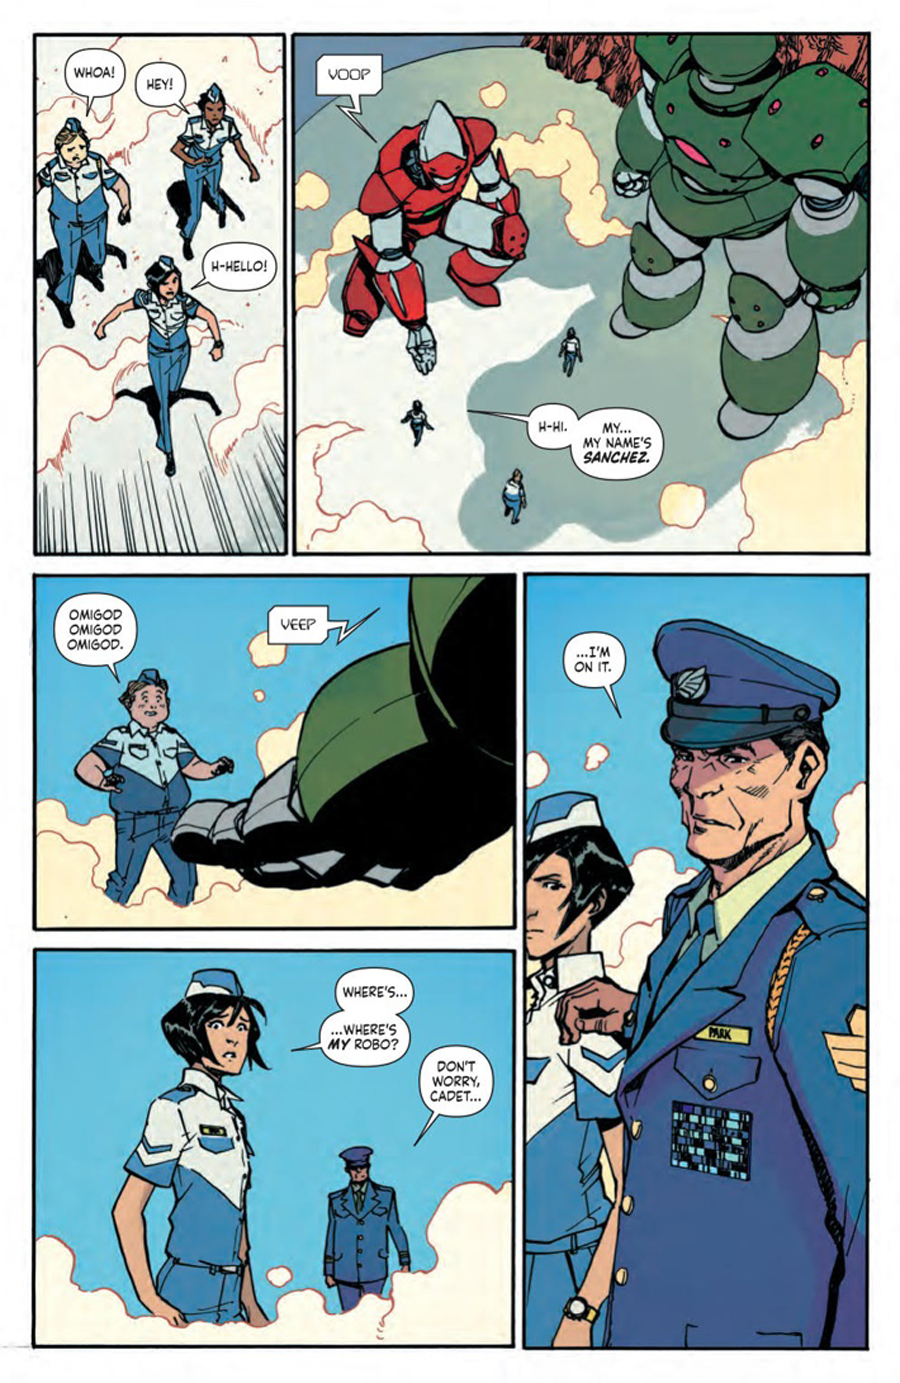 Park rejected by the robos in Mech Cadet Yu Vol. 1.